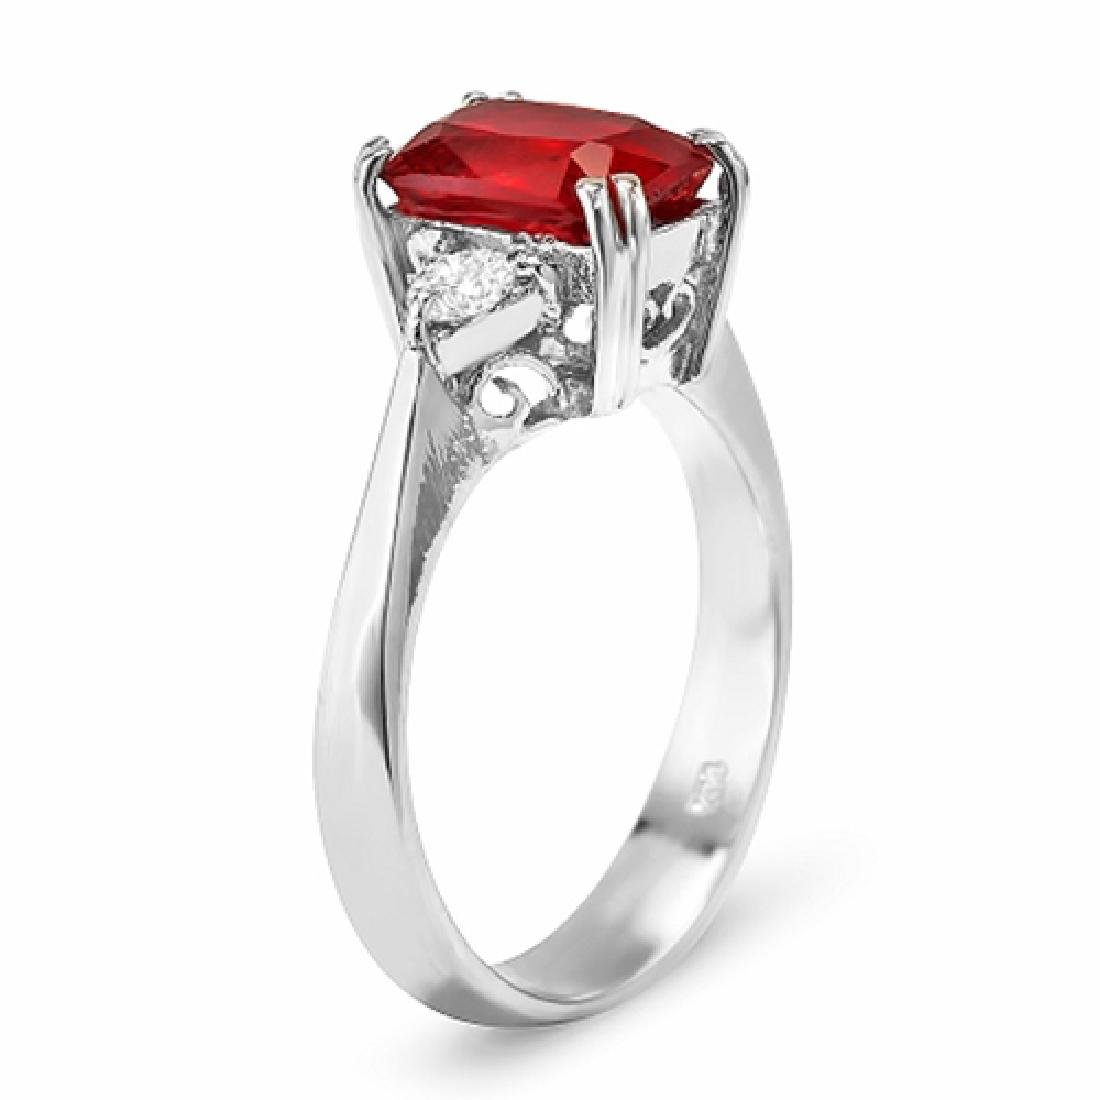 3.16 Carat Natural Ruby 18K Solid White Gold Diamond - 2